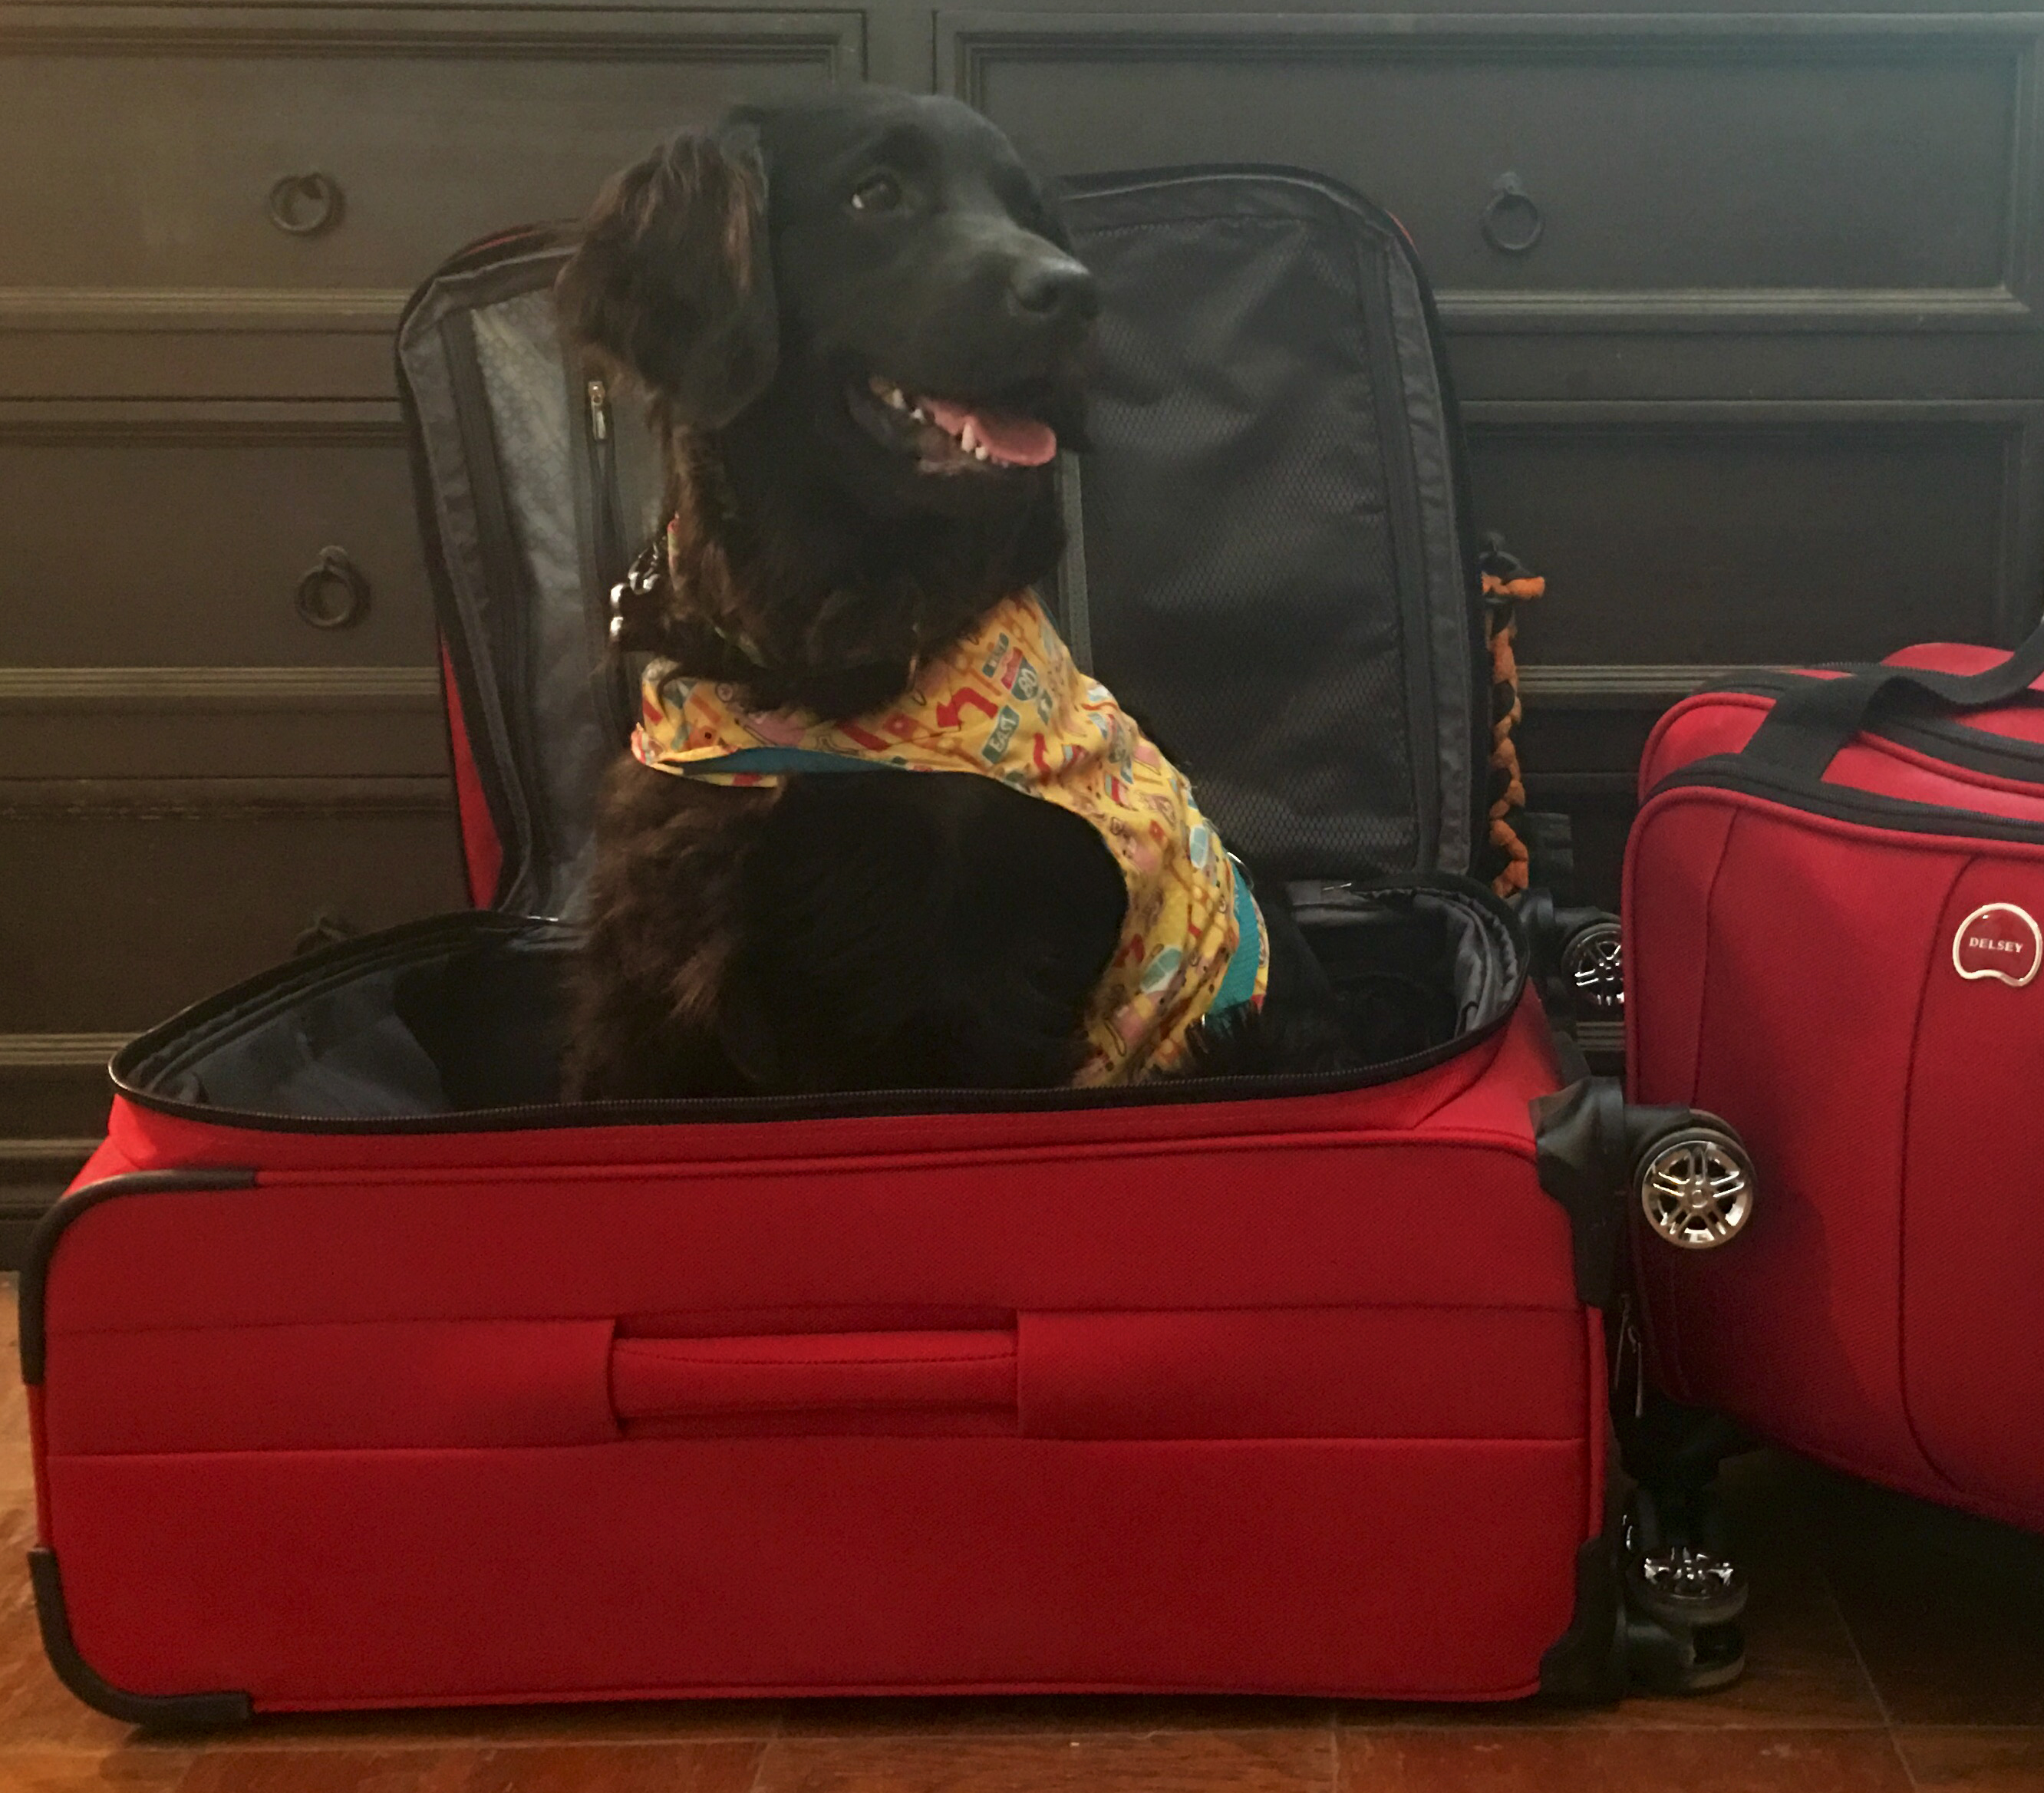 Traveling with a service dog